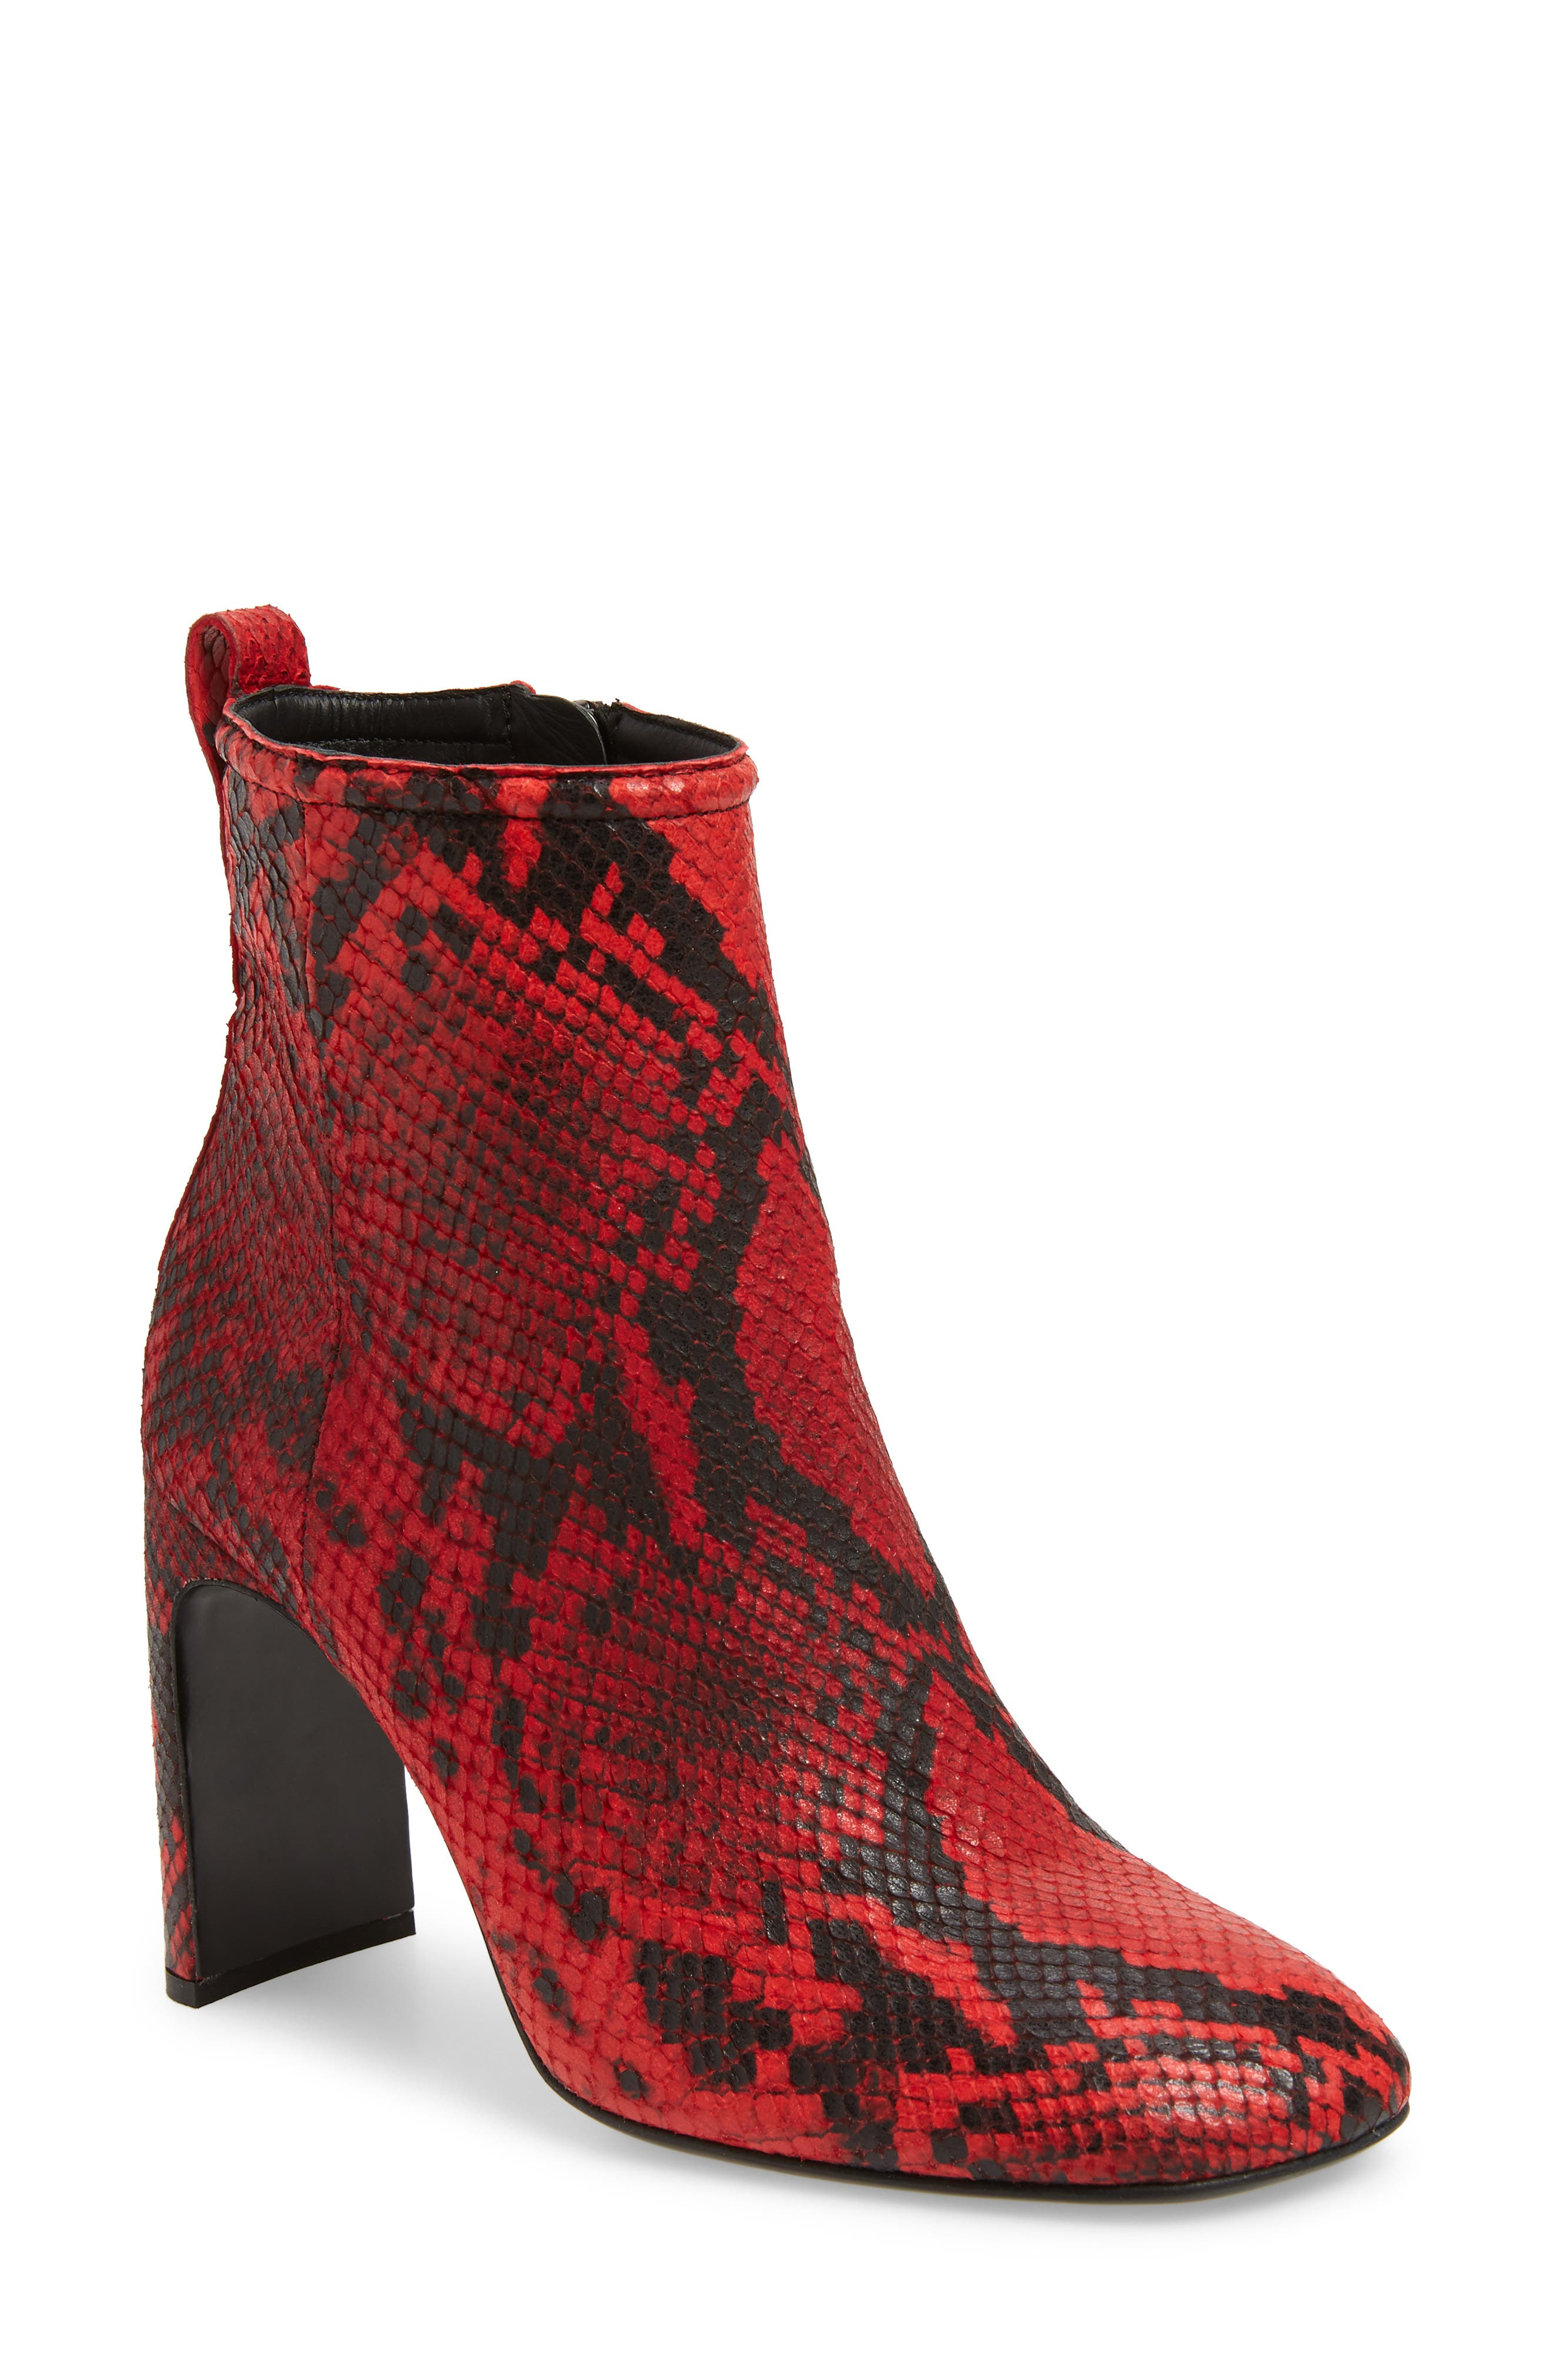 Rag & Bone Ellis Bootie, Red